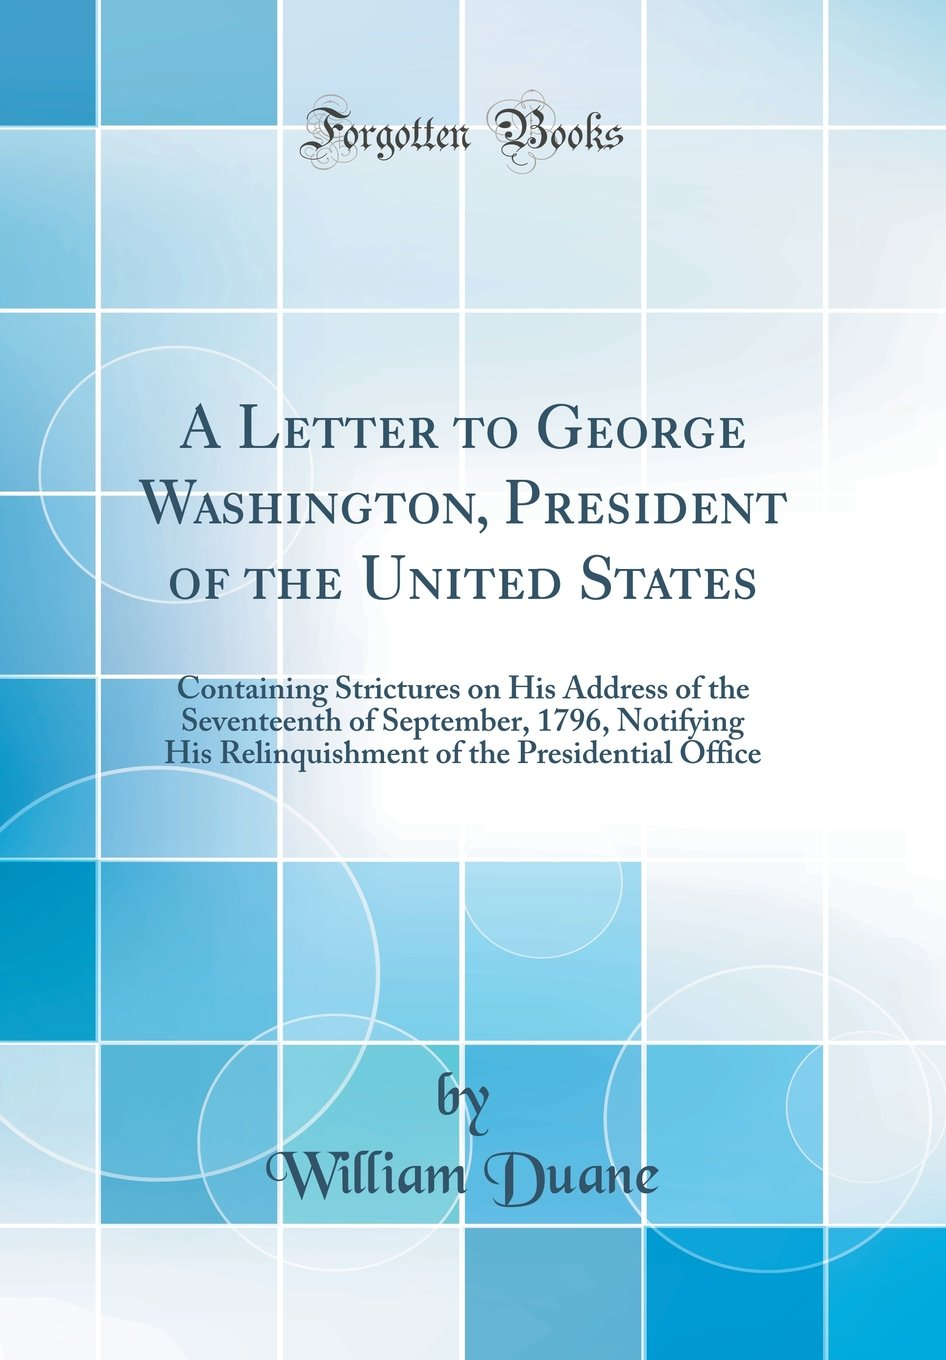 Download A Letter to George Washington, President of the United States: Containing Strictures on His Address of the Seventeenth of September, 1796, Notifying ... of the Presidential Office (Classic Reprint) pdf epub